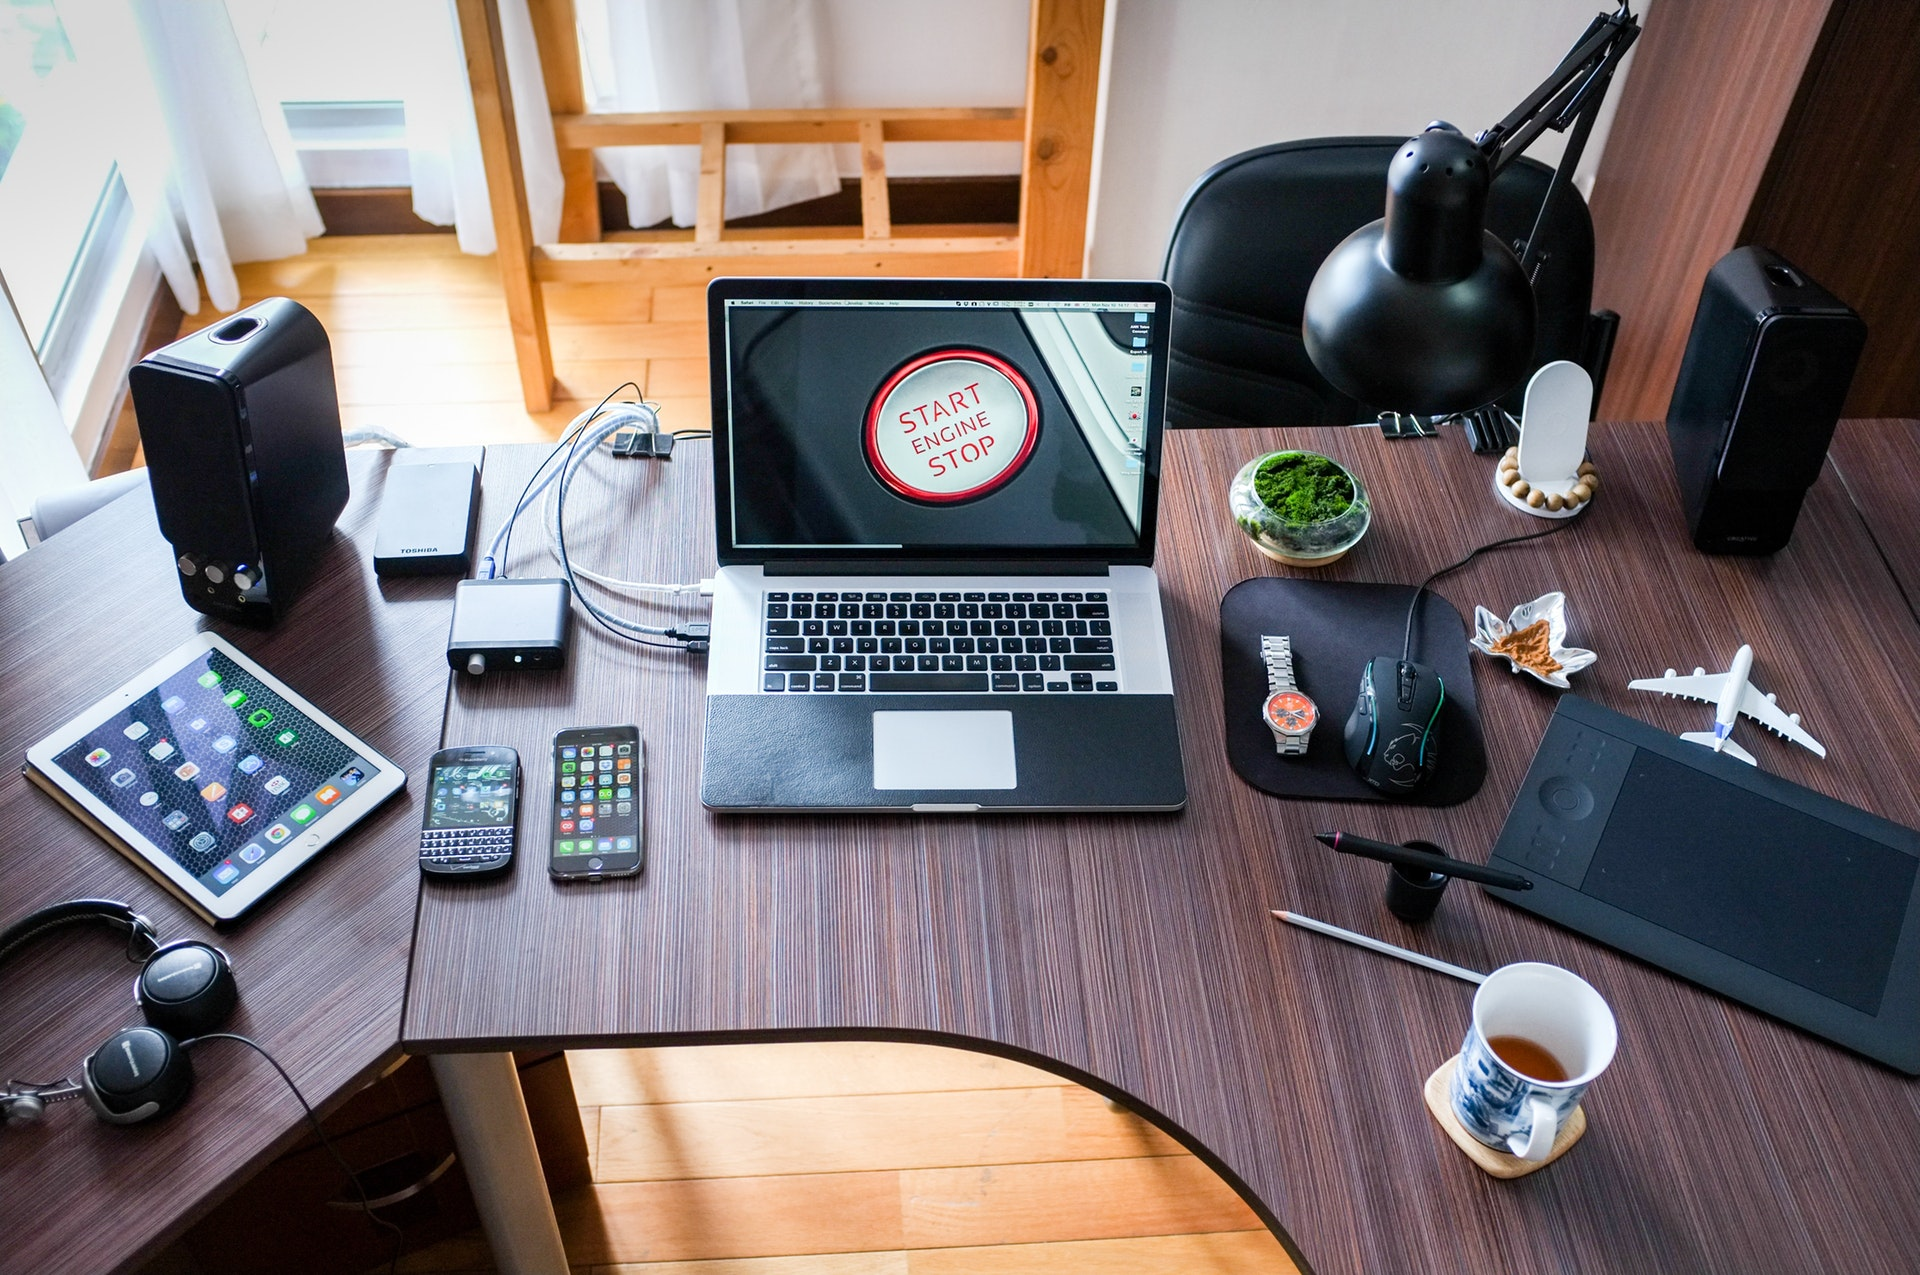 Need help setting up your home office?